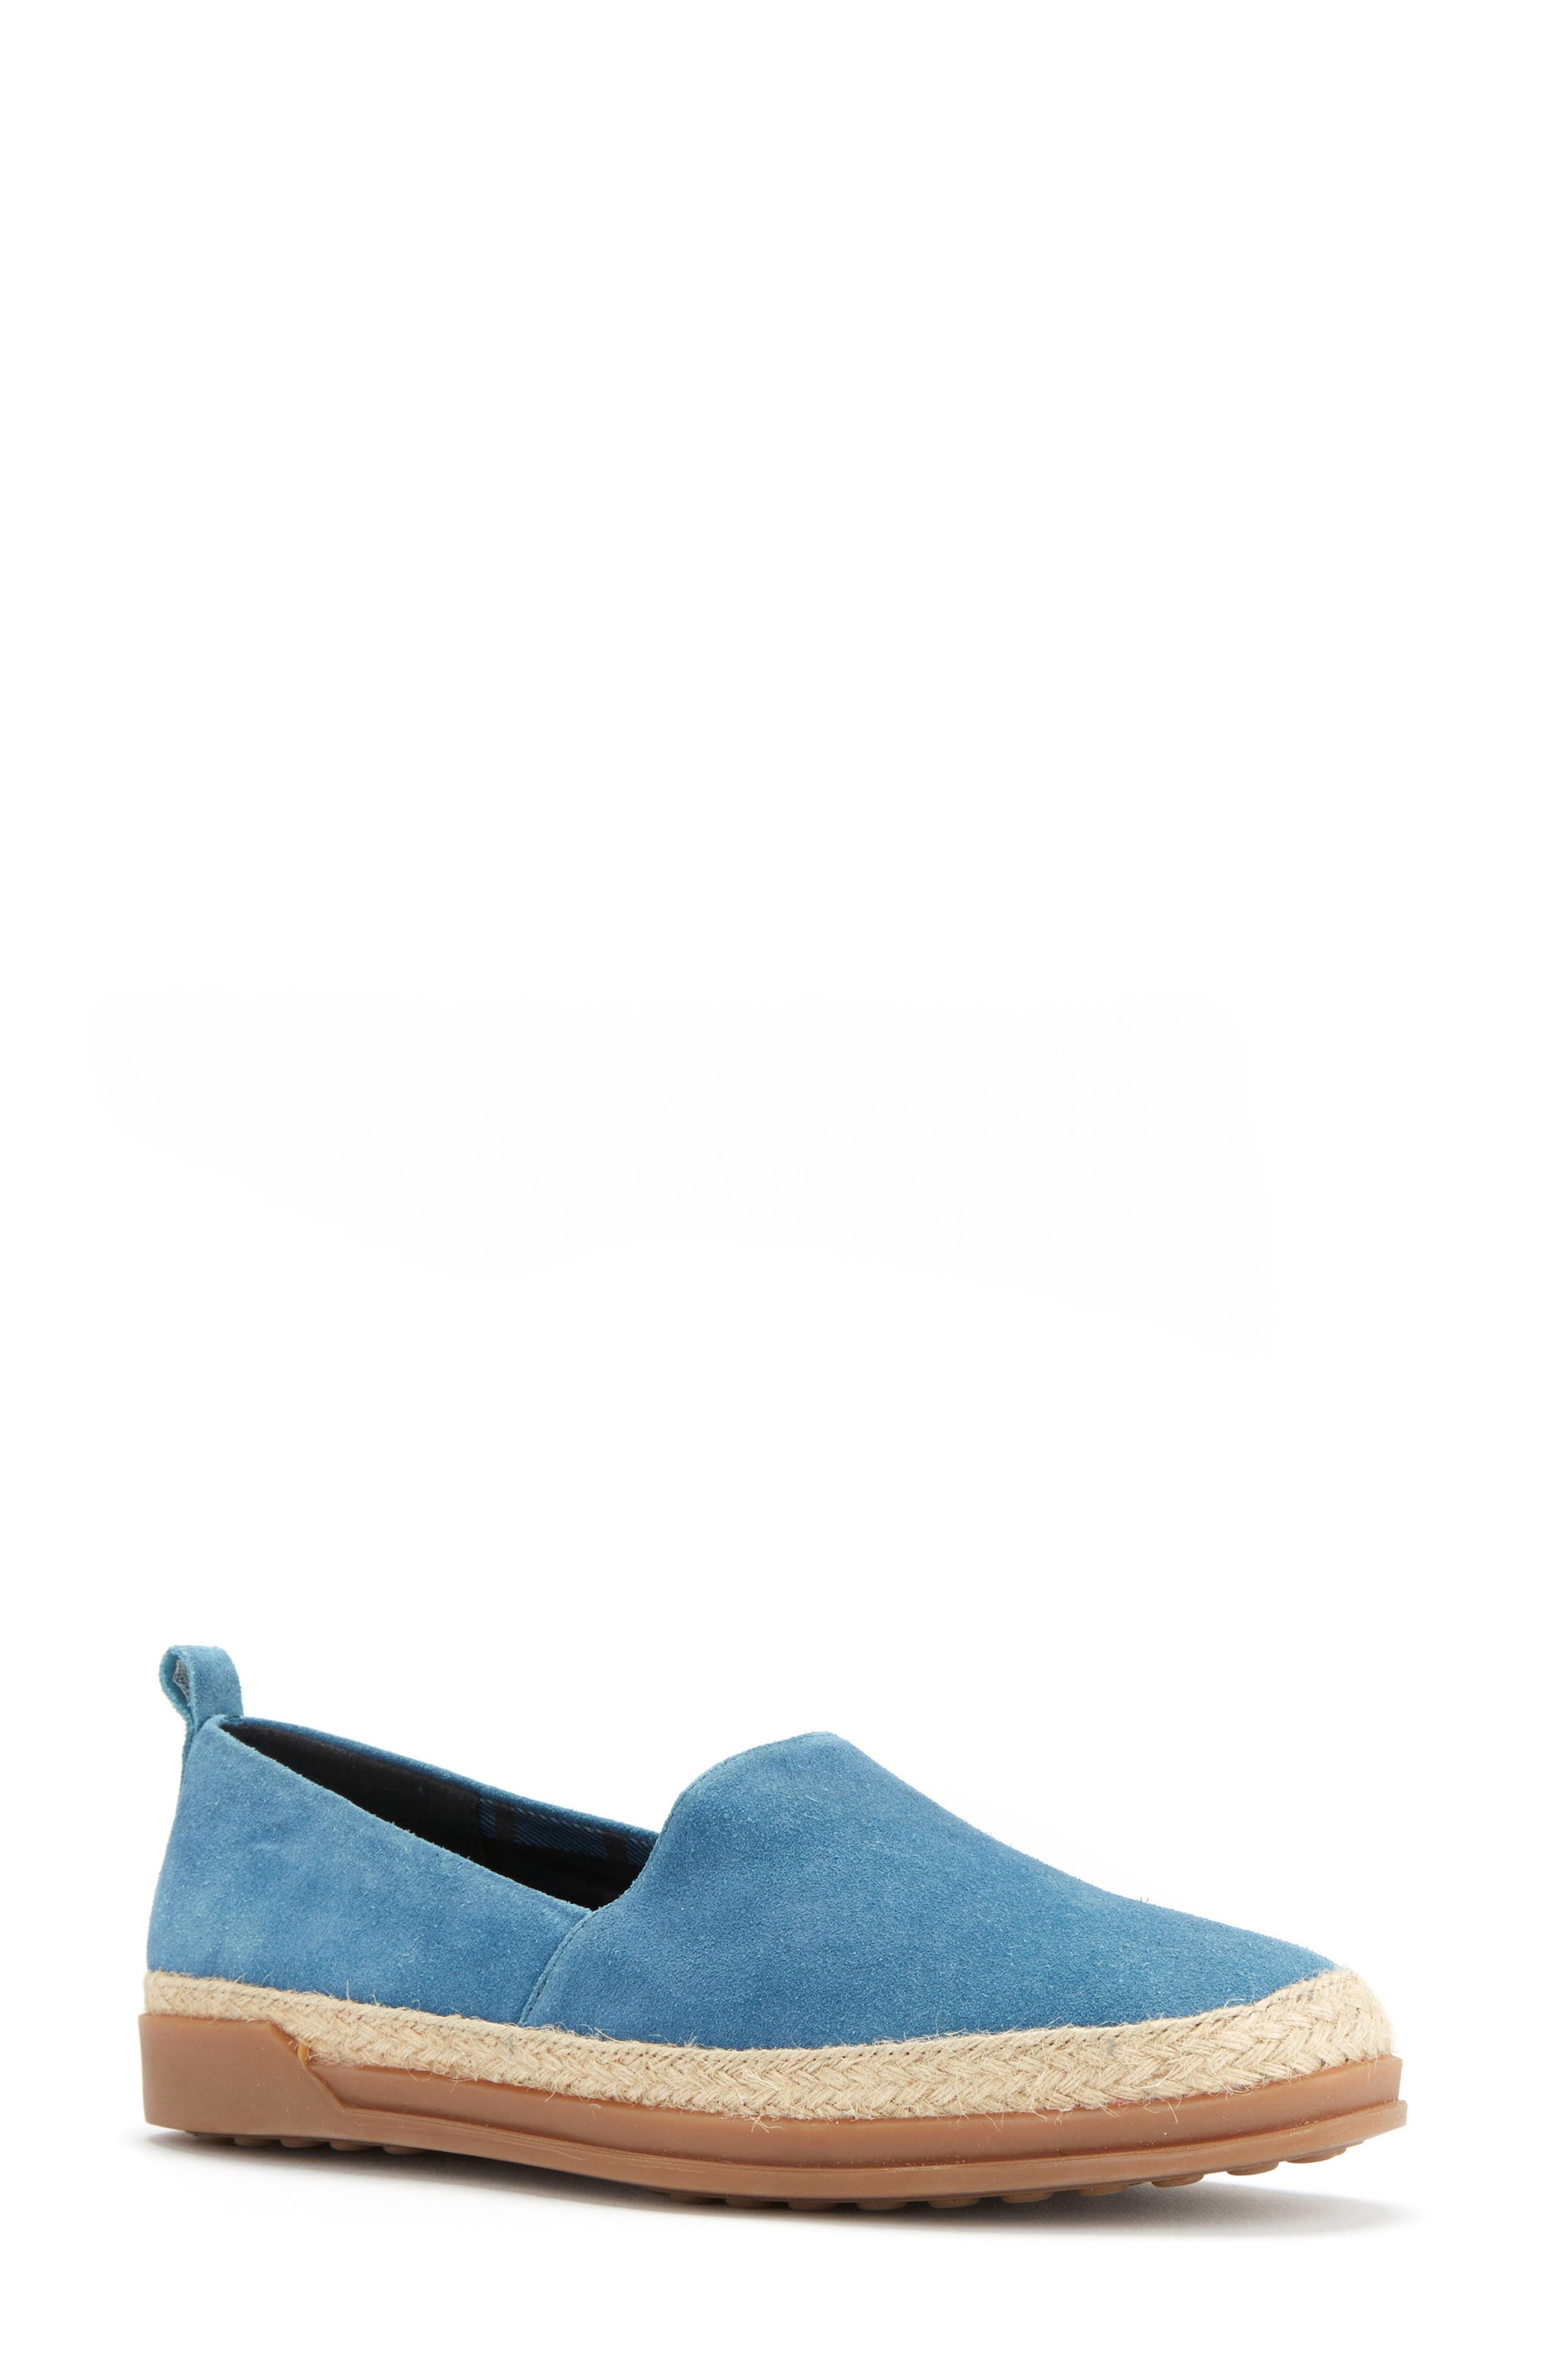 Bailey Espadrille Flat,                         Main,                         color, Blue Suede